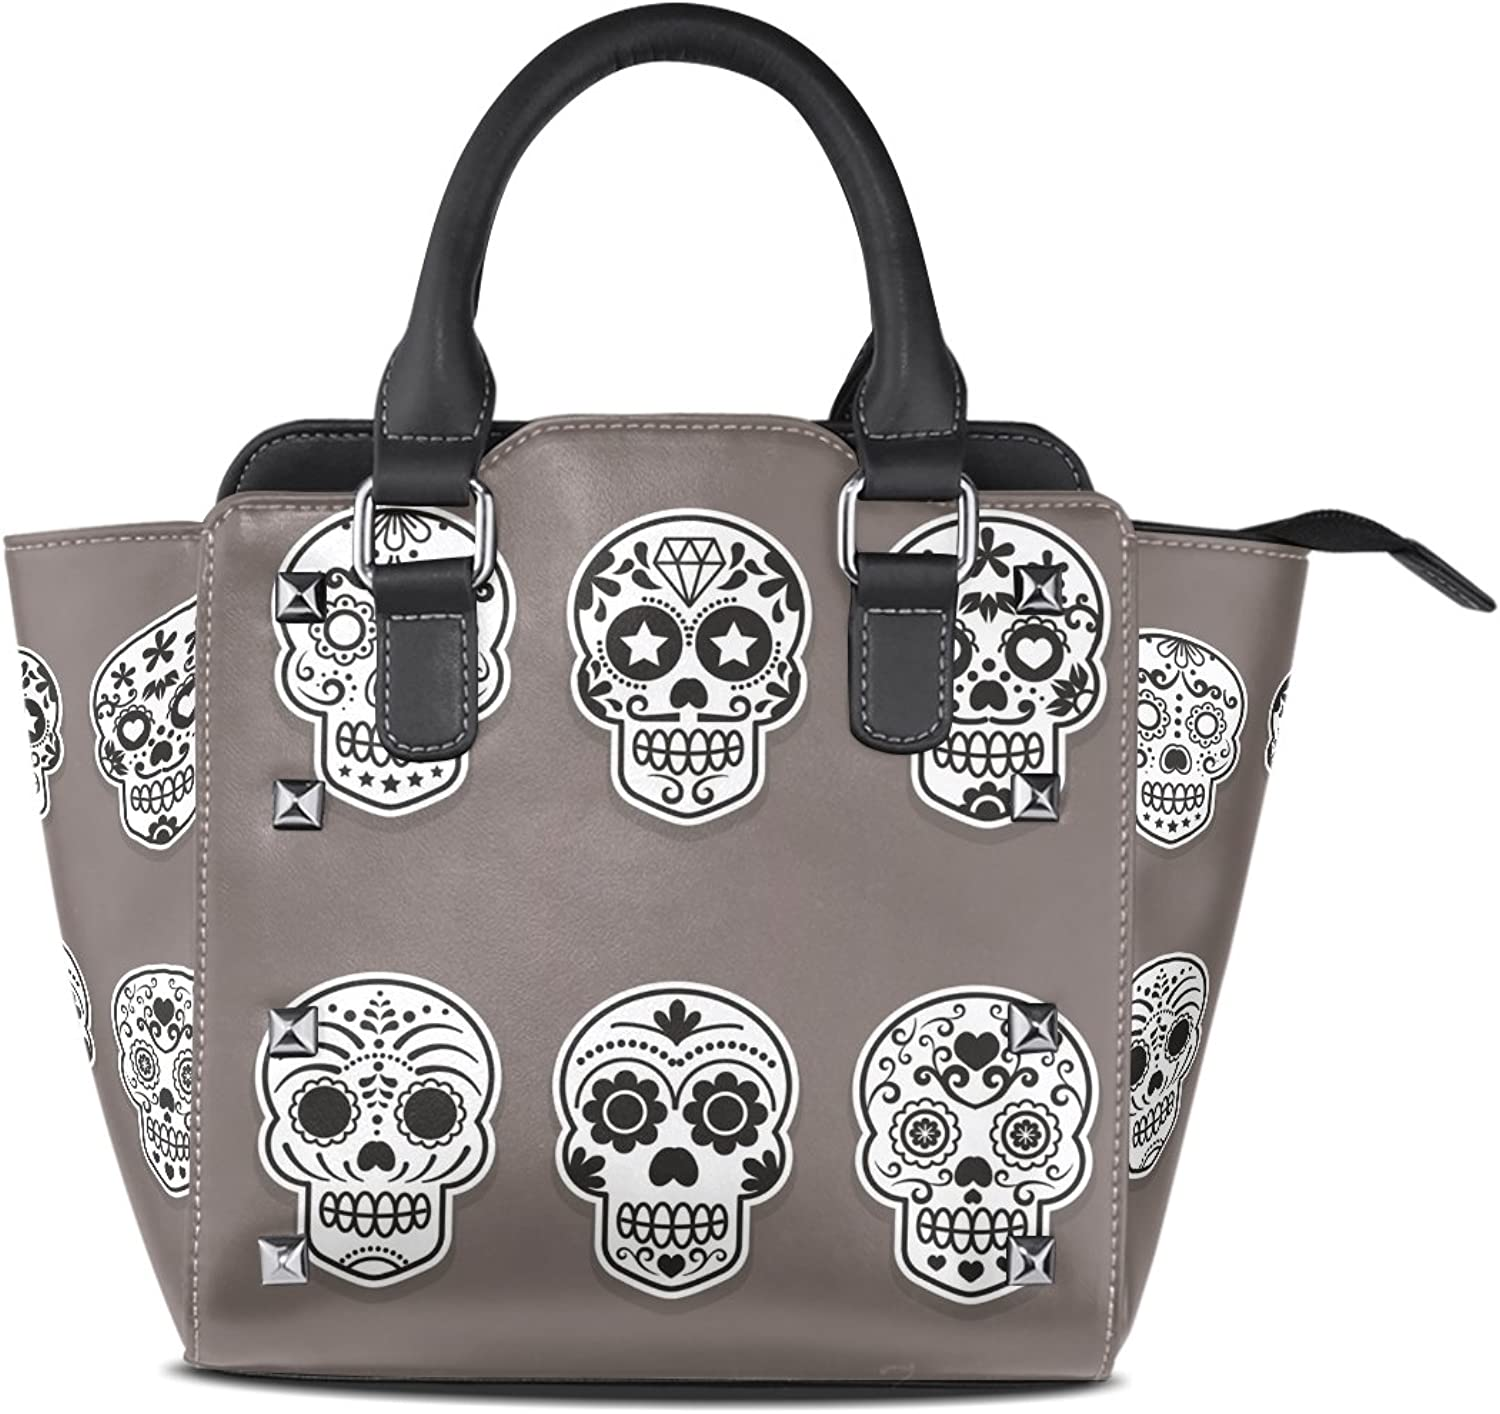 Sunlome Sugar Skull Flower Women's Leather Tote Shoulder Bags Handbags